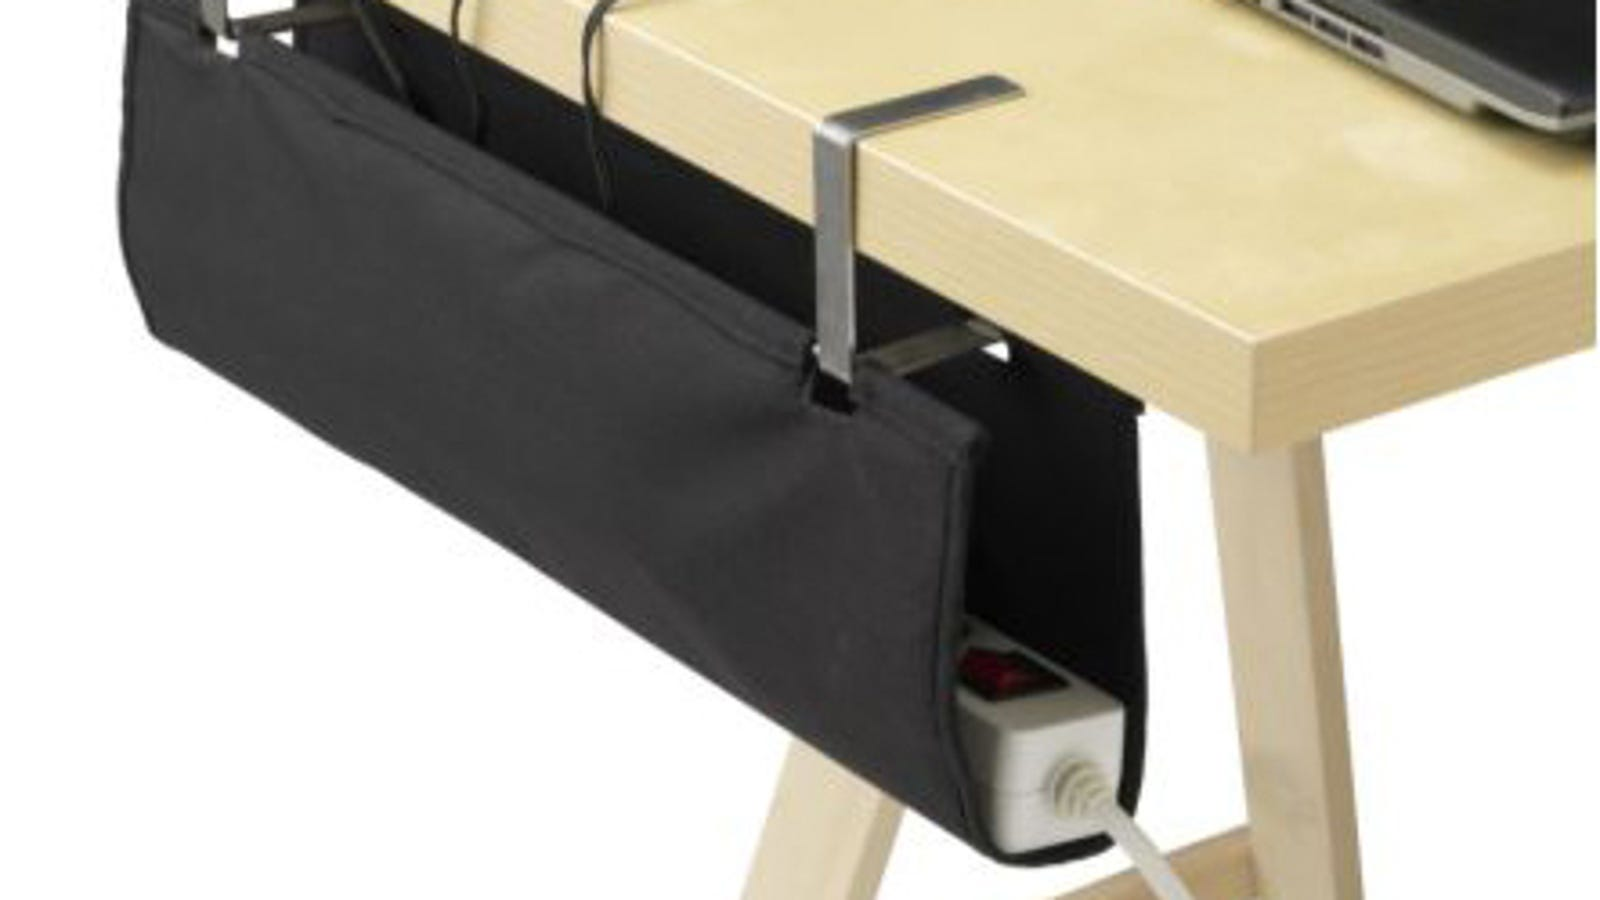 IKEA SIGNUM Series Cheaply Manages Your Cables